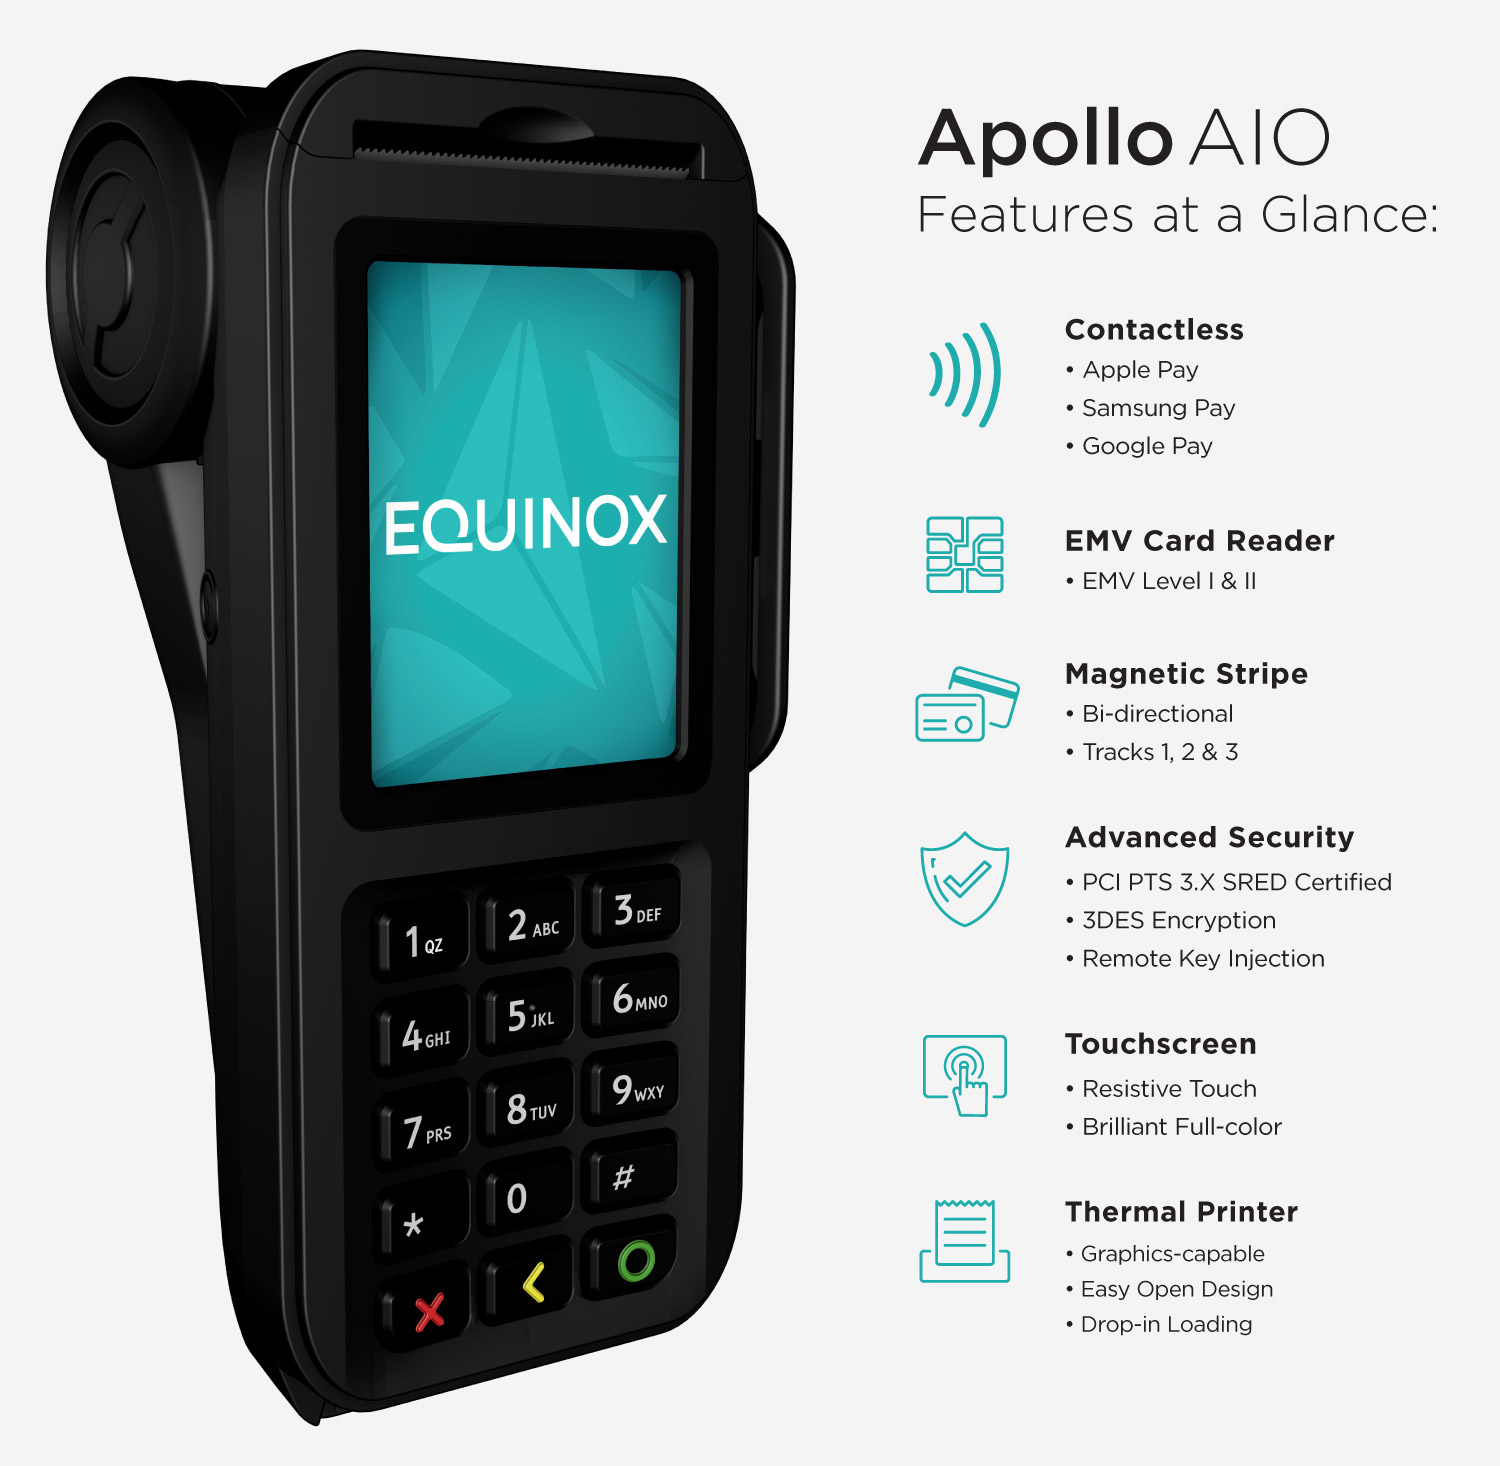 Apollo AIO is EMV/Smart Card, Contactless and NFC capable with advanced  technology to handle all payment types, no matter how your customers choose  to pay.